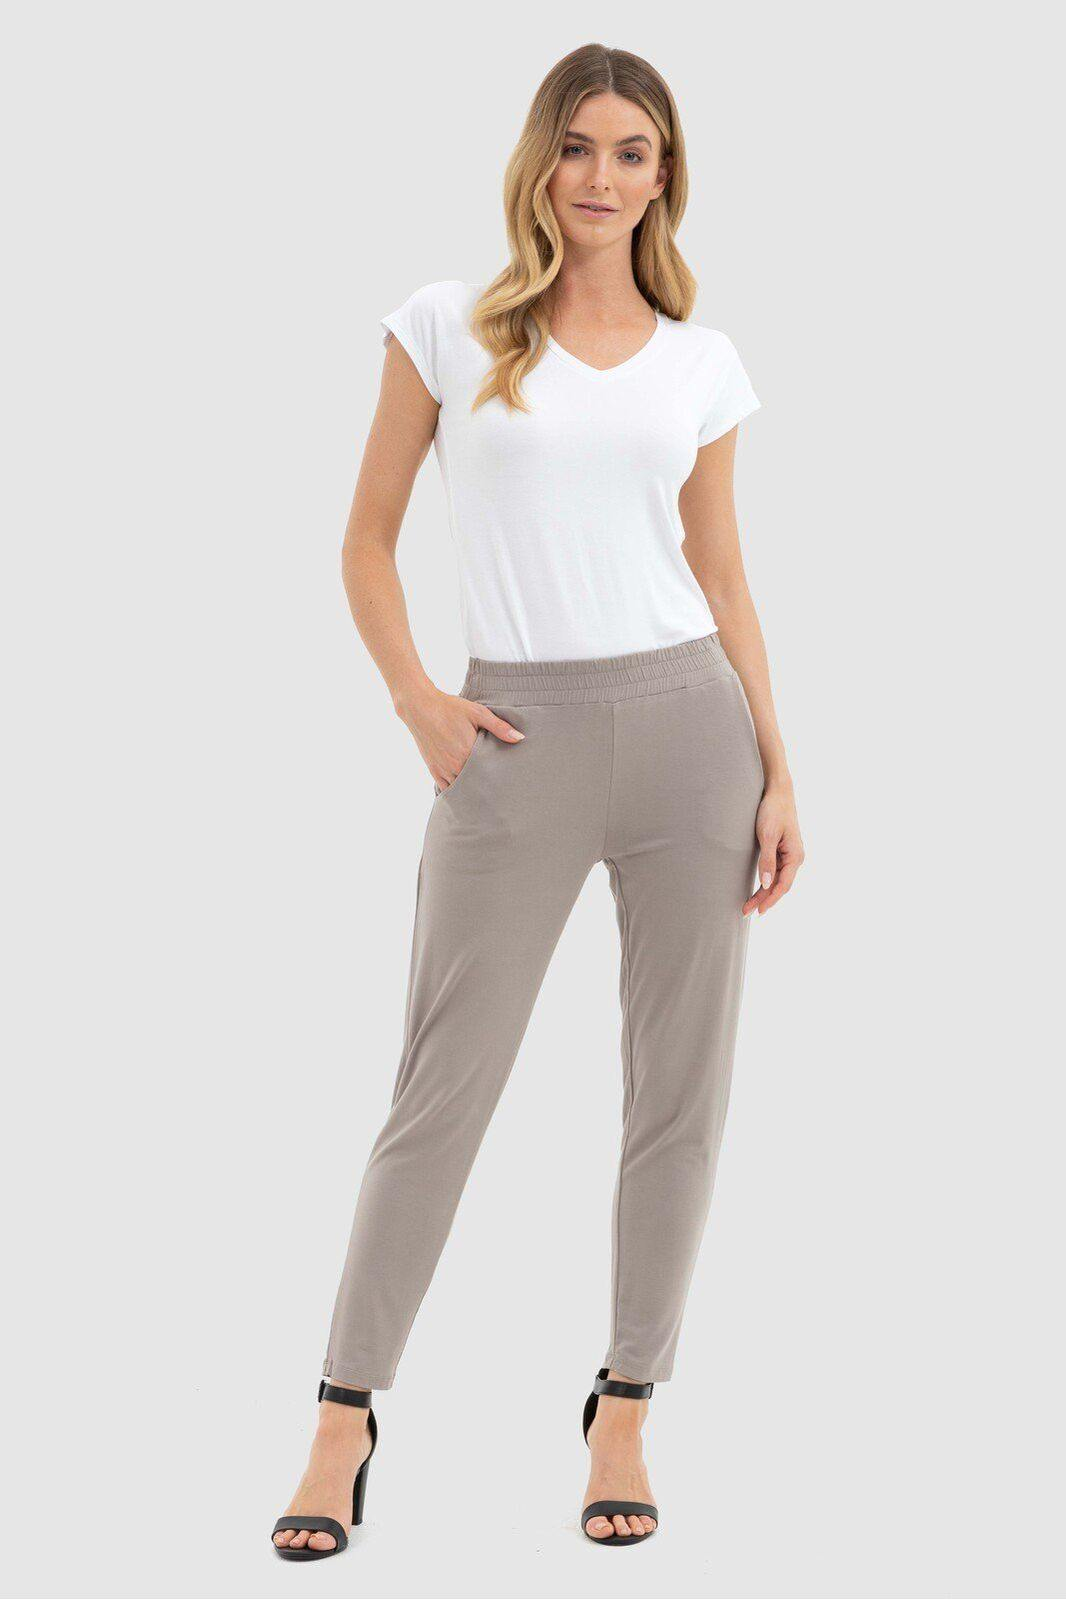 Bamboo Body Peggy Trousers - Stone style {{product.sku}} - buy from Weekends on 2nd Ave at {{shop.url}} or visit our shop at Second Ave Plaza on the corner of Beaufort Street & Second Avenue Mount Lawley WA